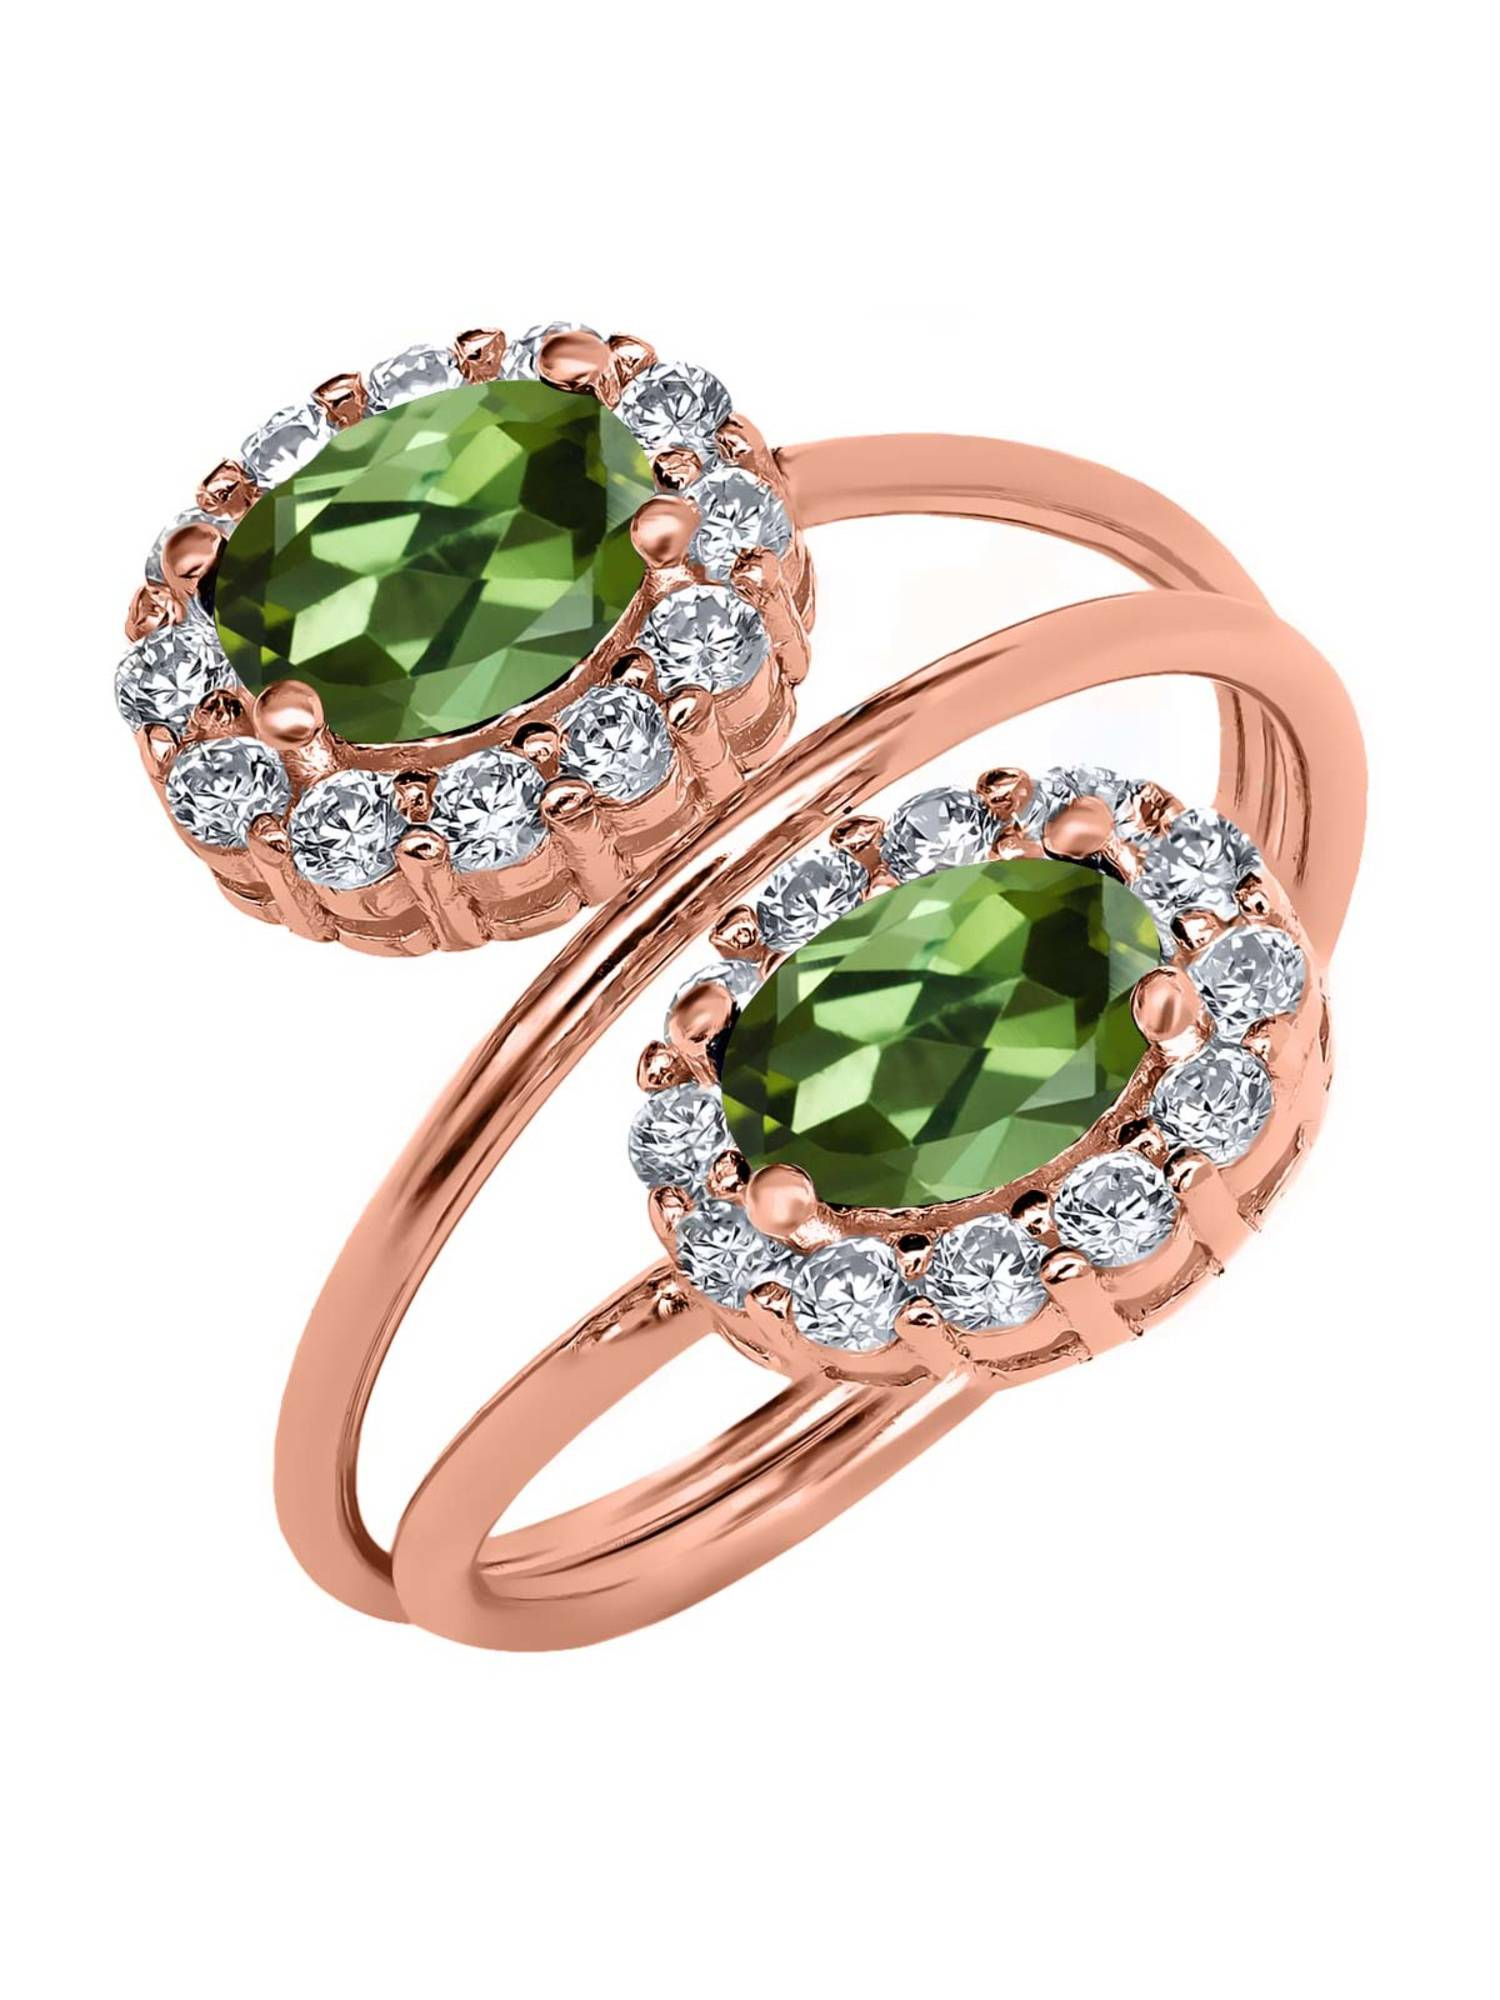 2.48 Ct Oval Green Tourmaline 18K Rose Gold Plated Silver Ring by